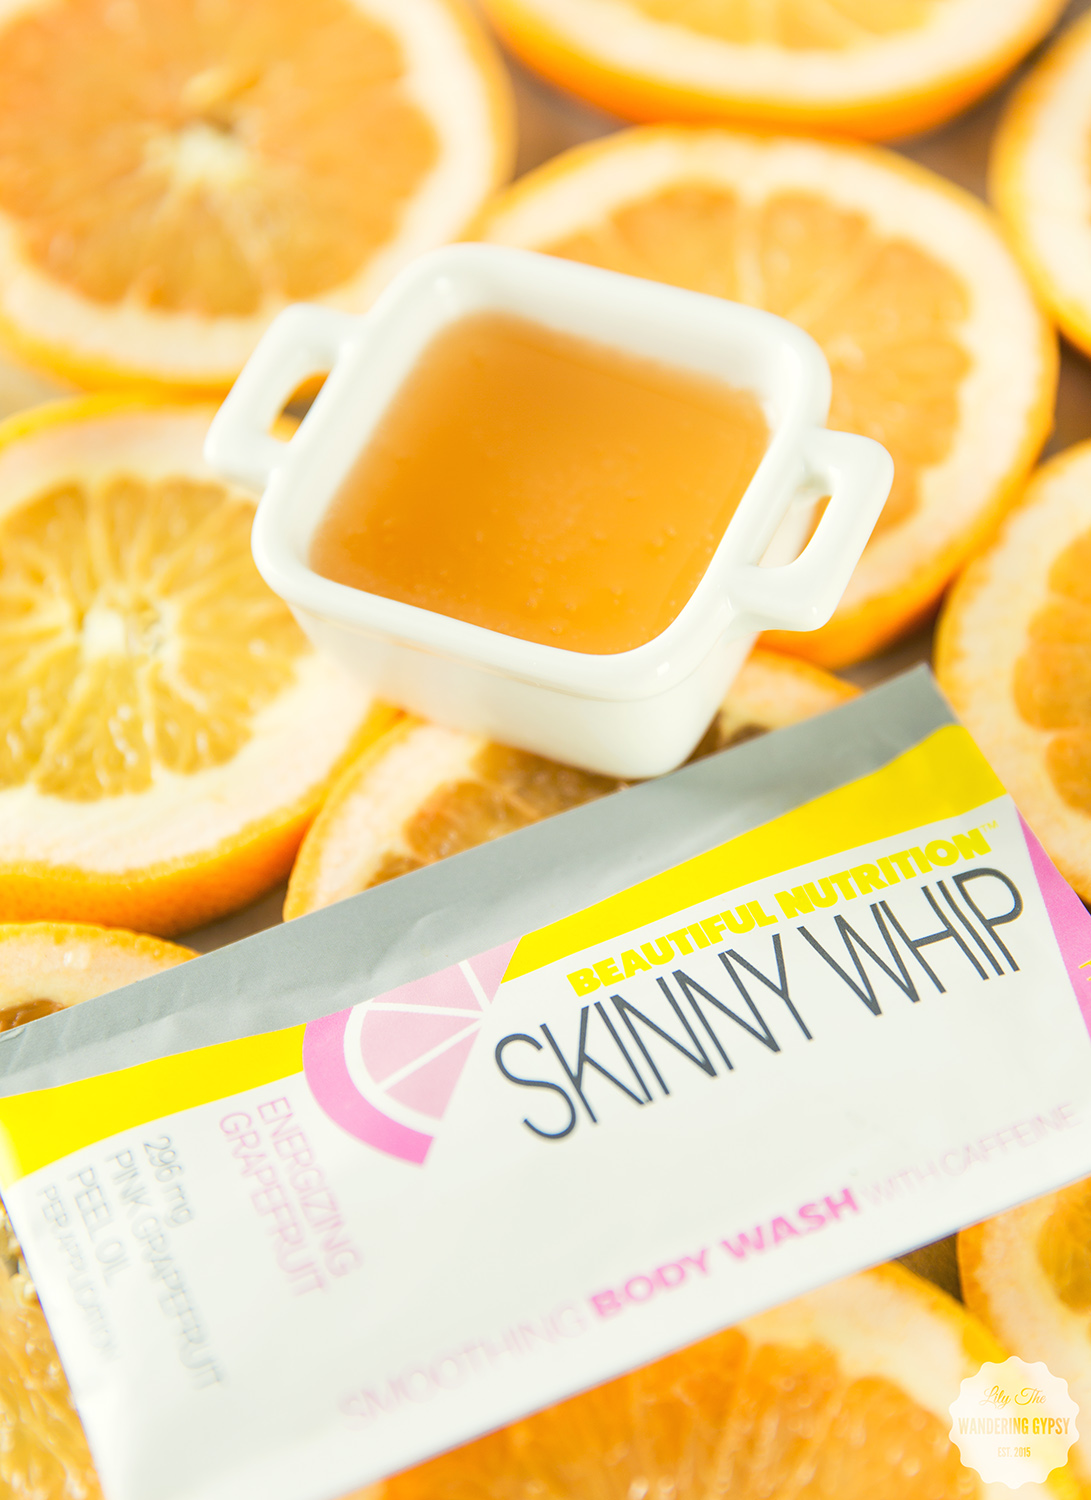 skinny whip grapefruit body wash